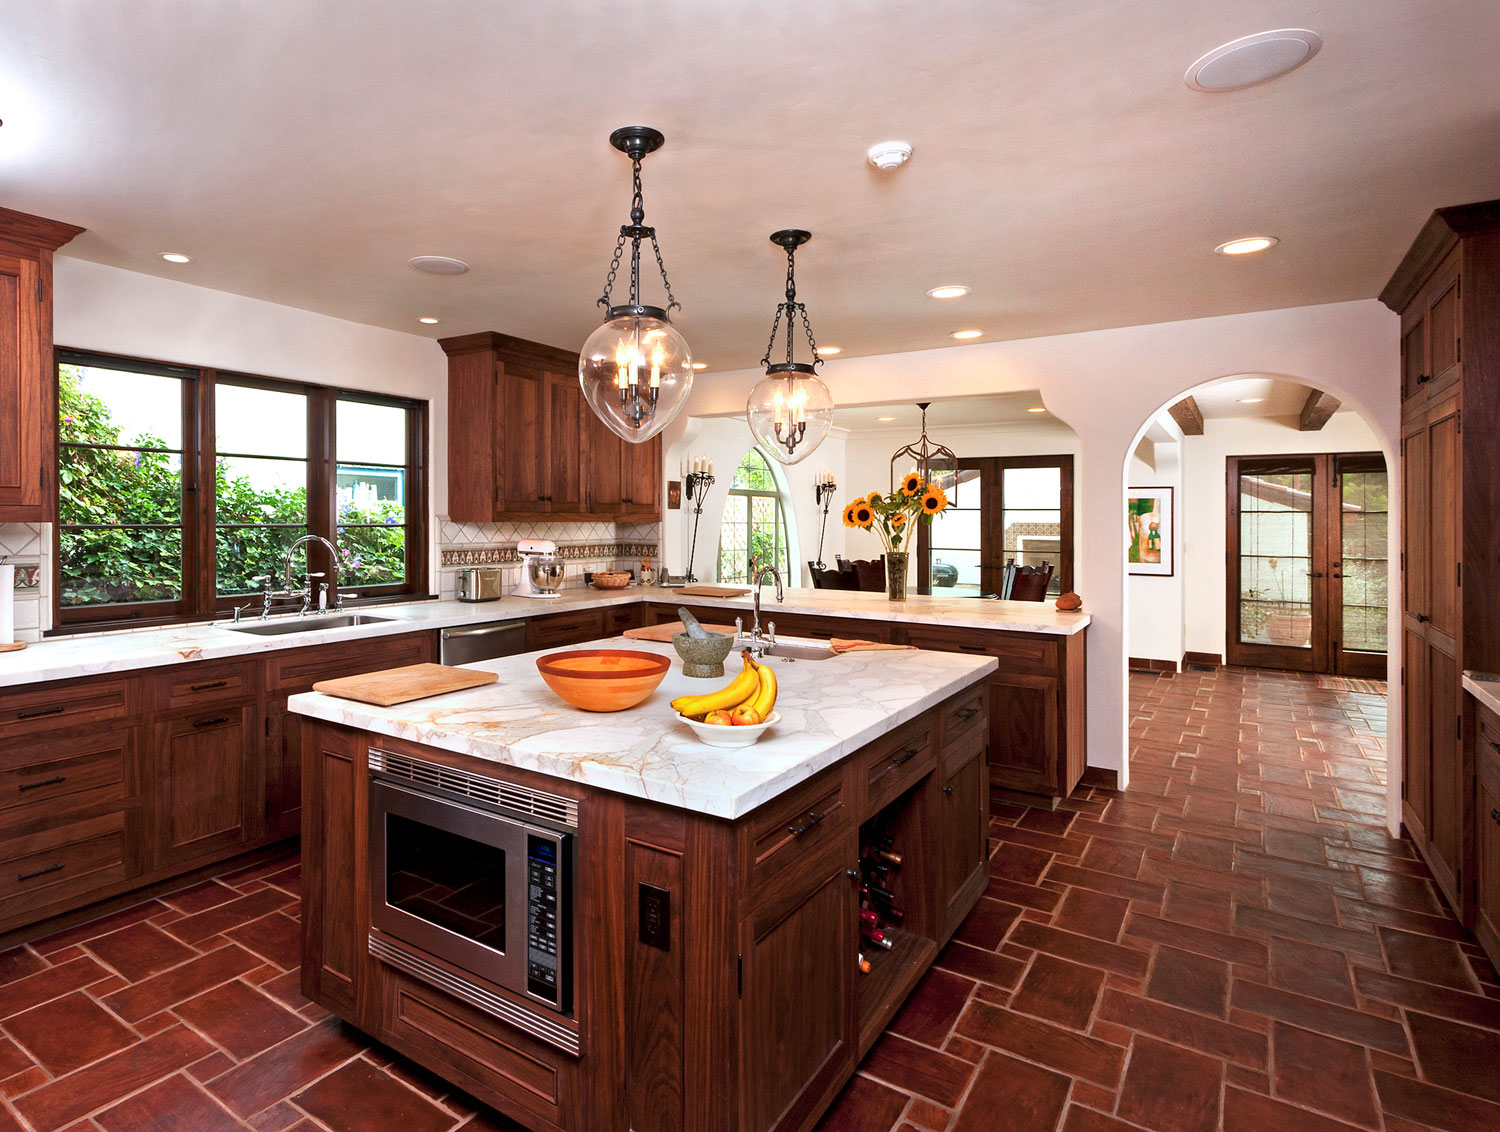 06-Contemporary-Spanish-Kitchen-Warm-Wood-Marble-Countertops-Island-Gary-drake-General-Contractor.jpg